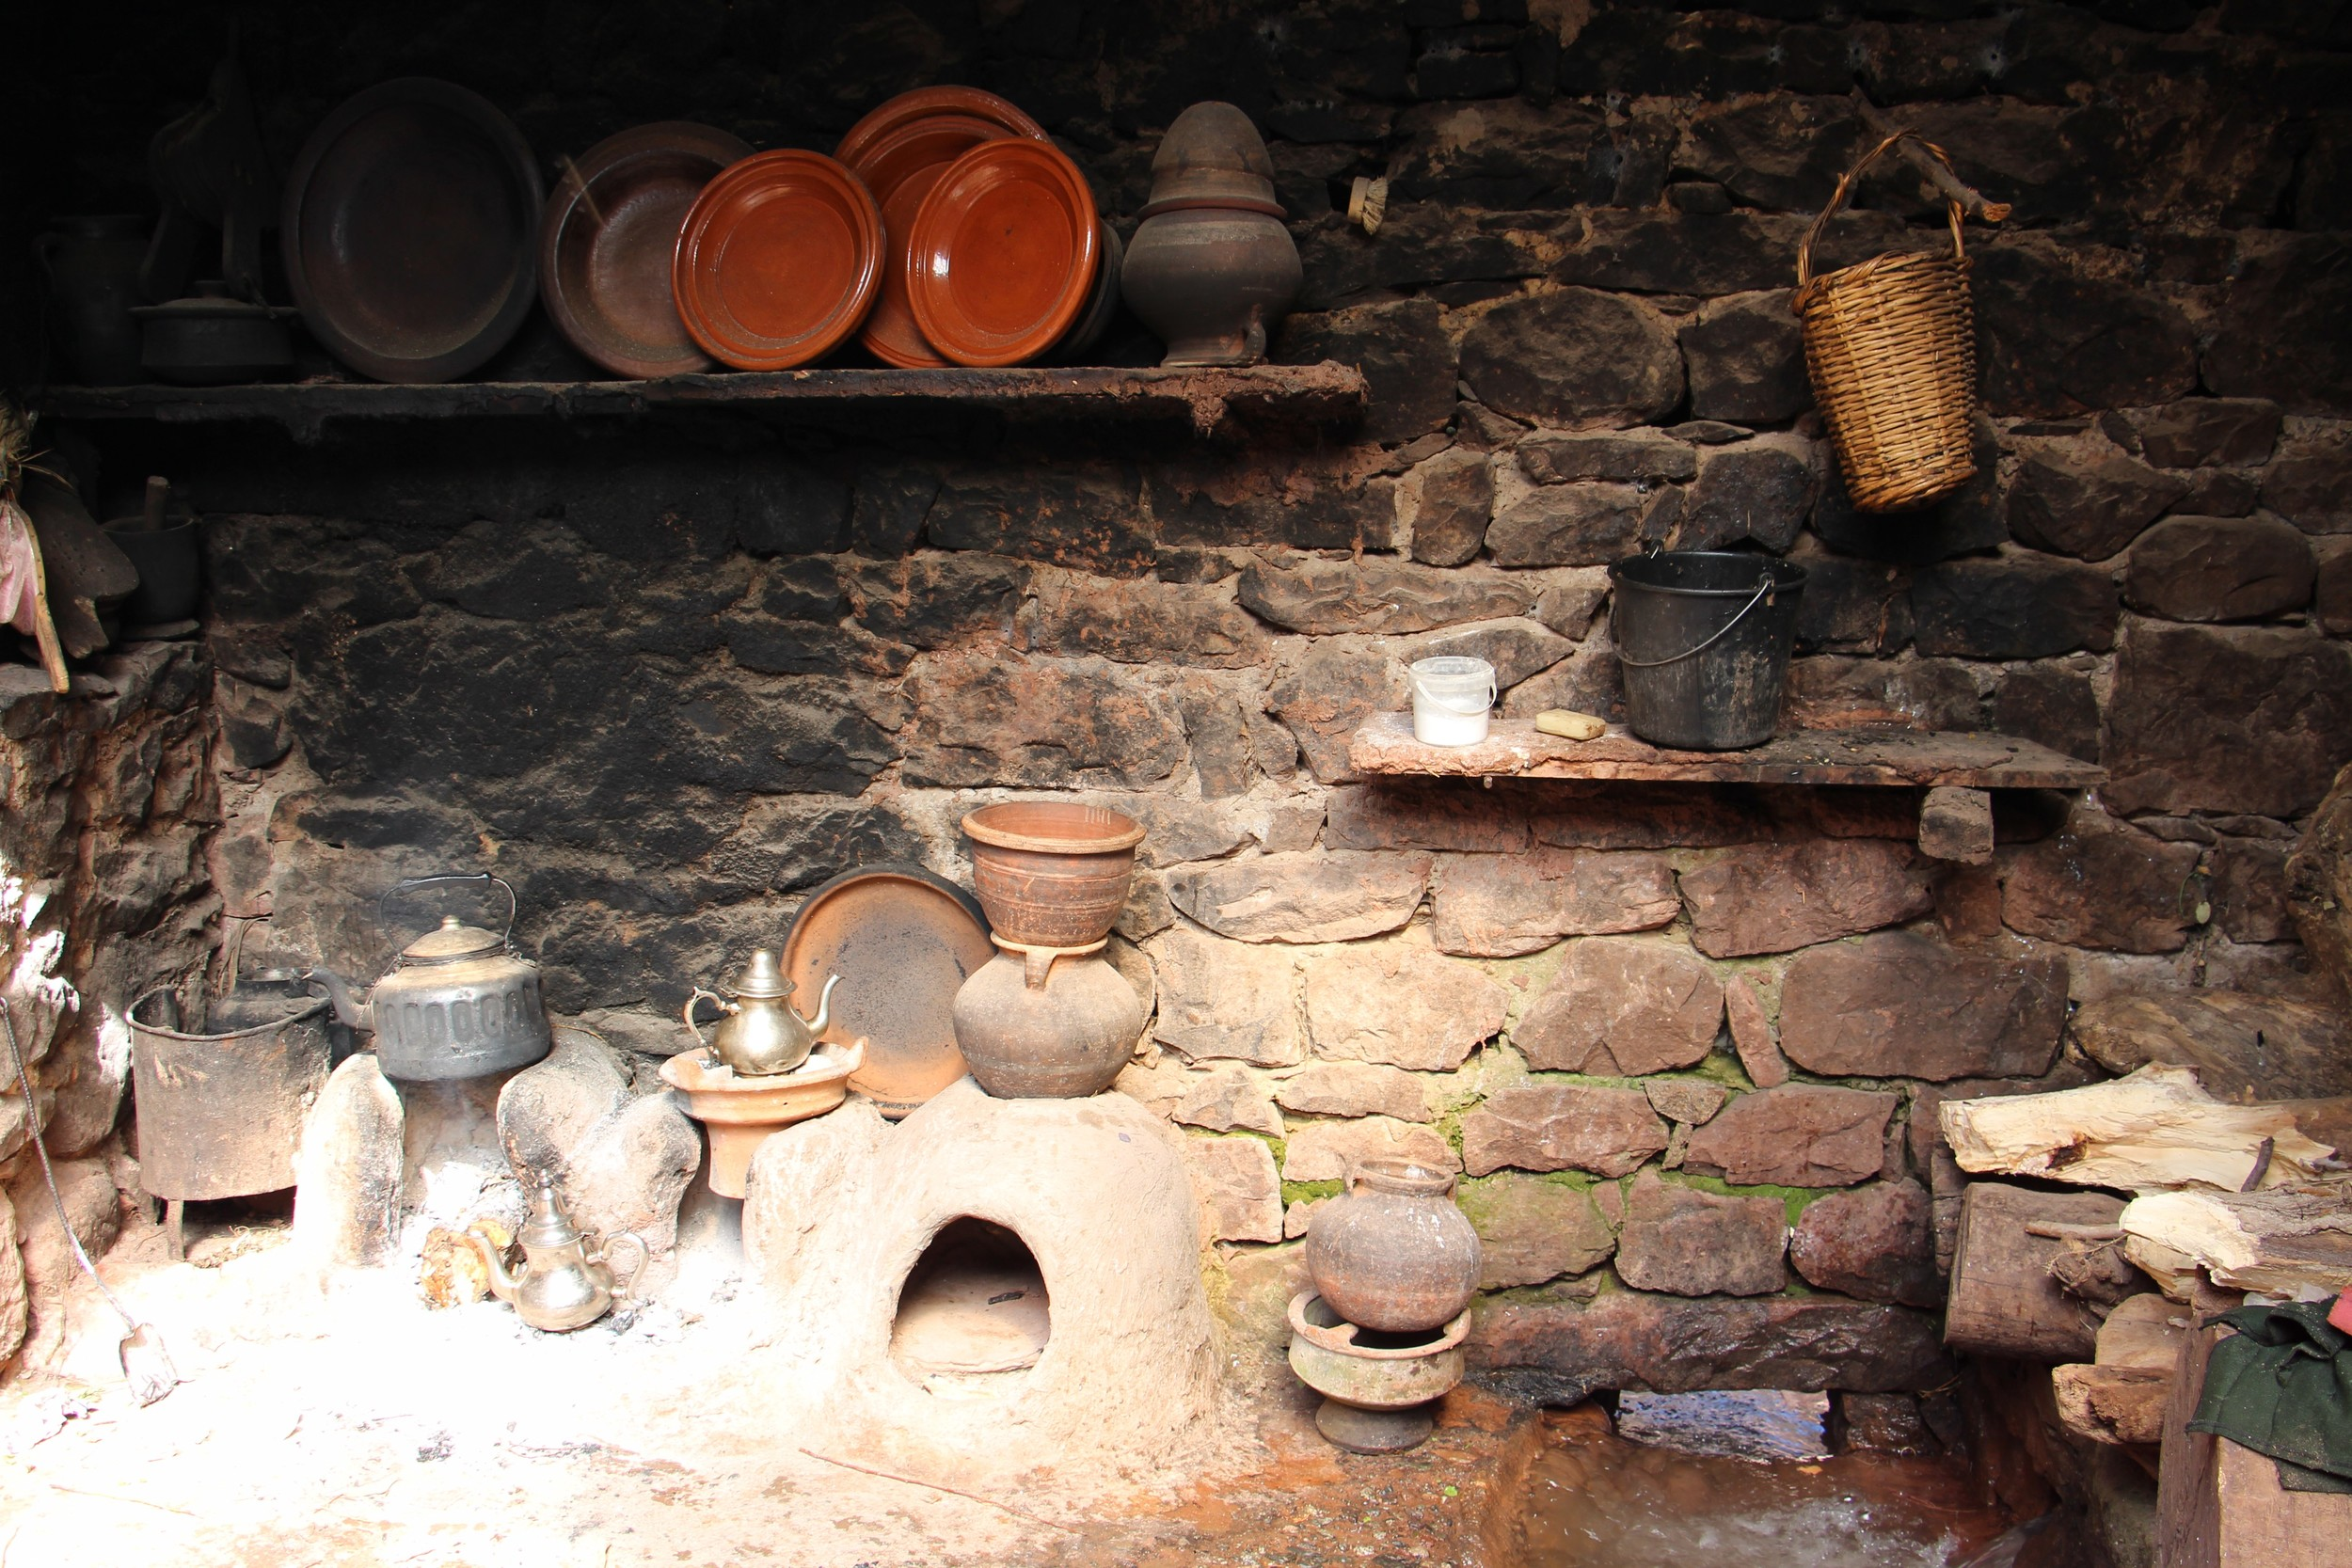 Here's a photo of their kitchen. With running gas or water!